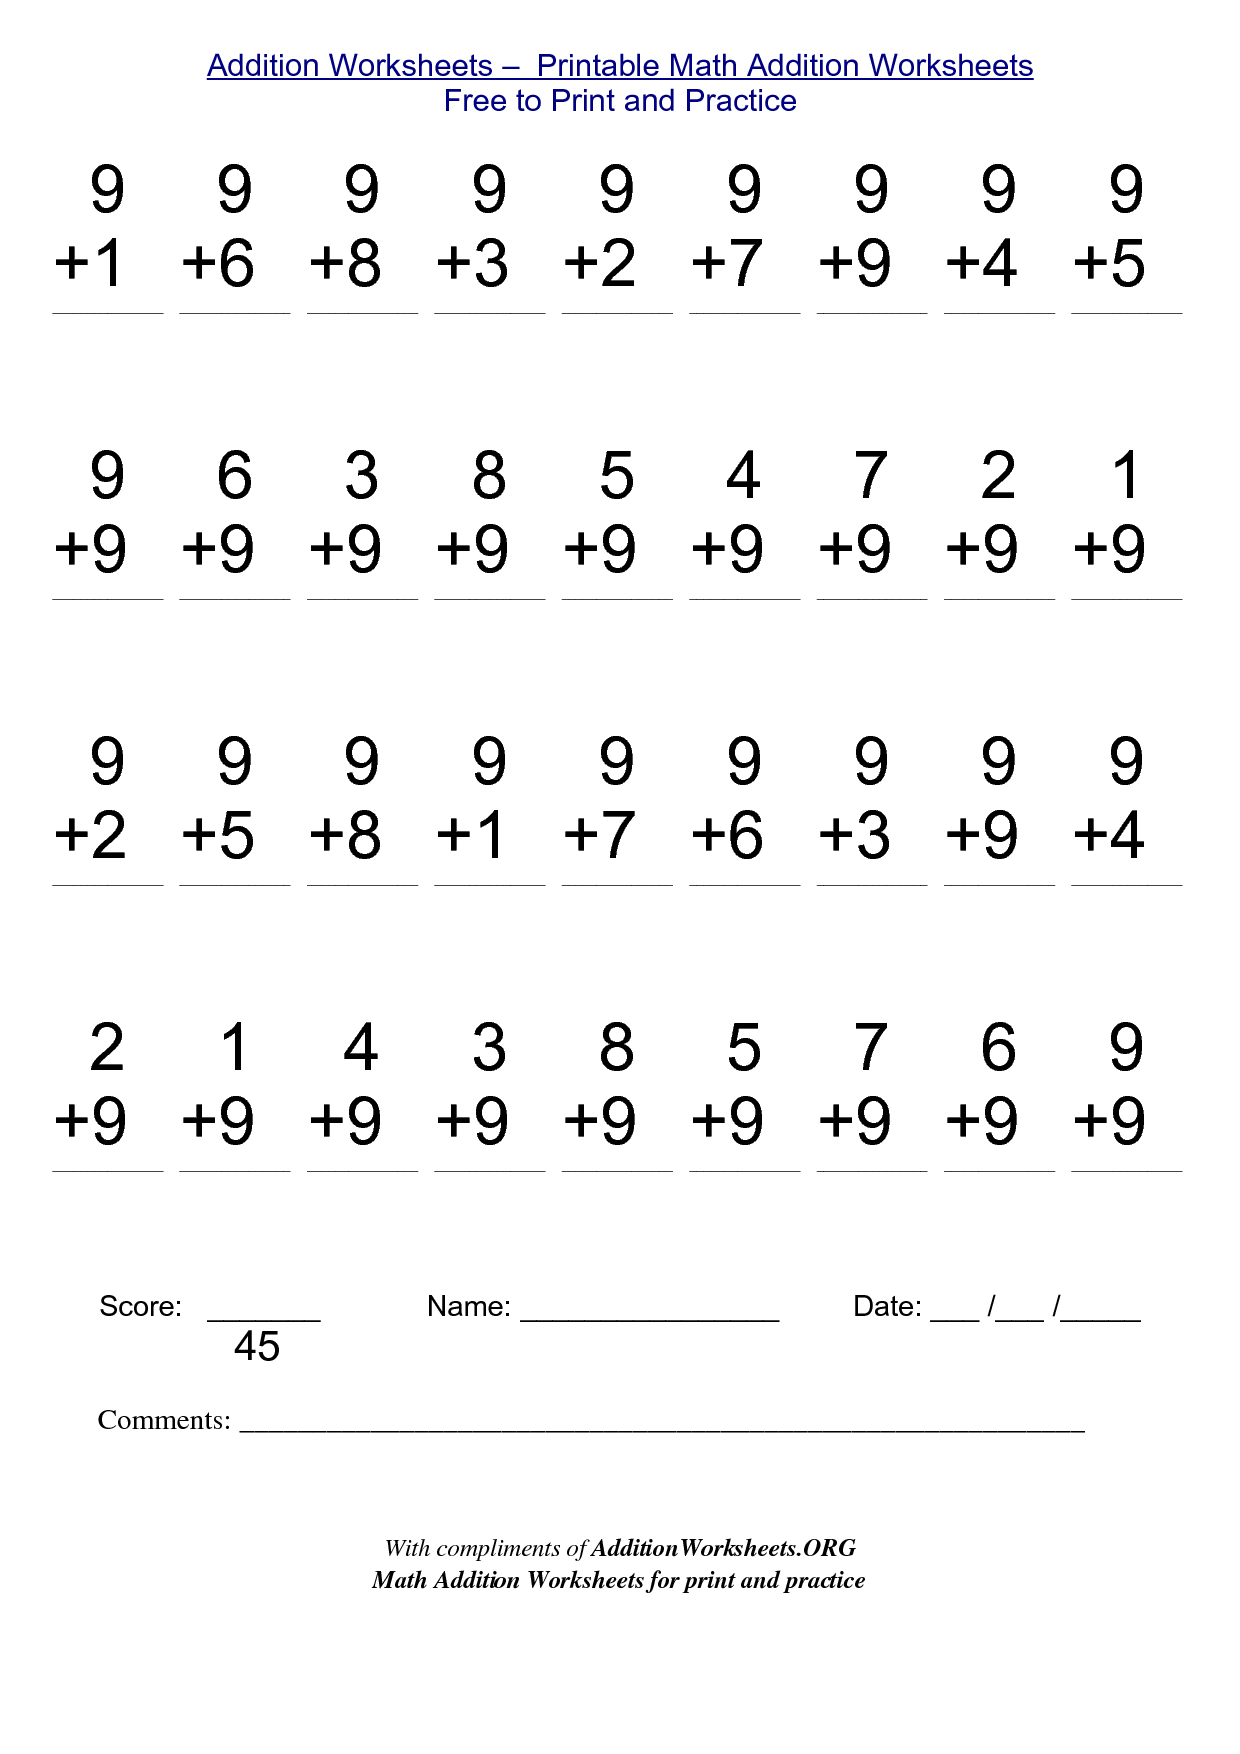 2Nd Grade Stuff To Print | Addition Worksheets - Printable Math | Free Printable Worksheets For Math 2Nd Grade